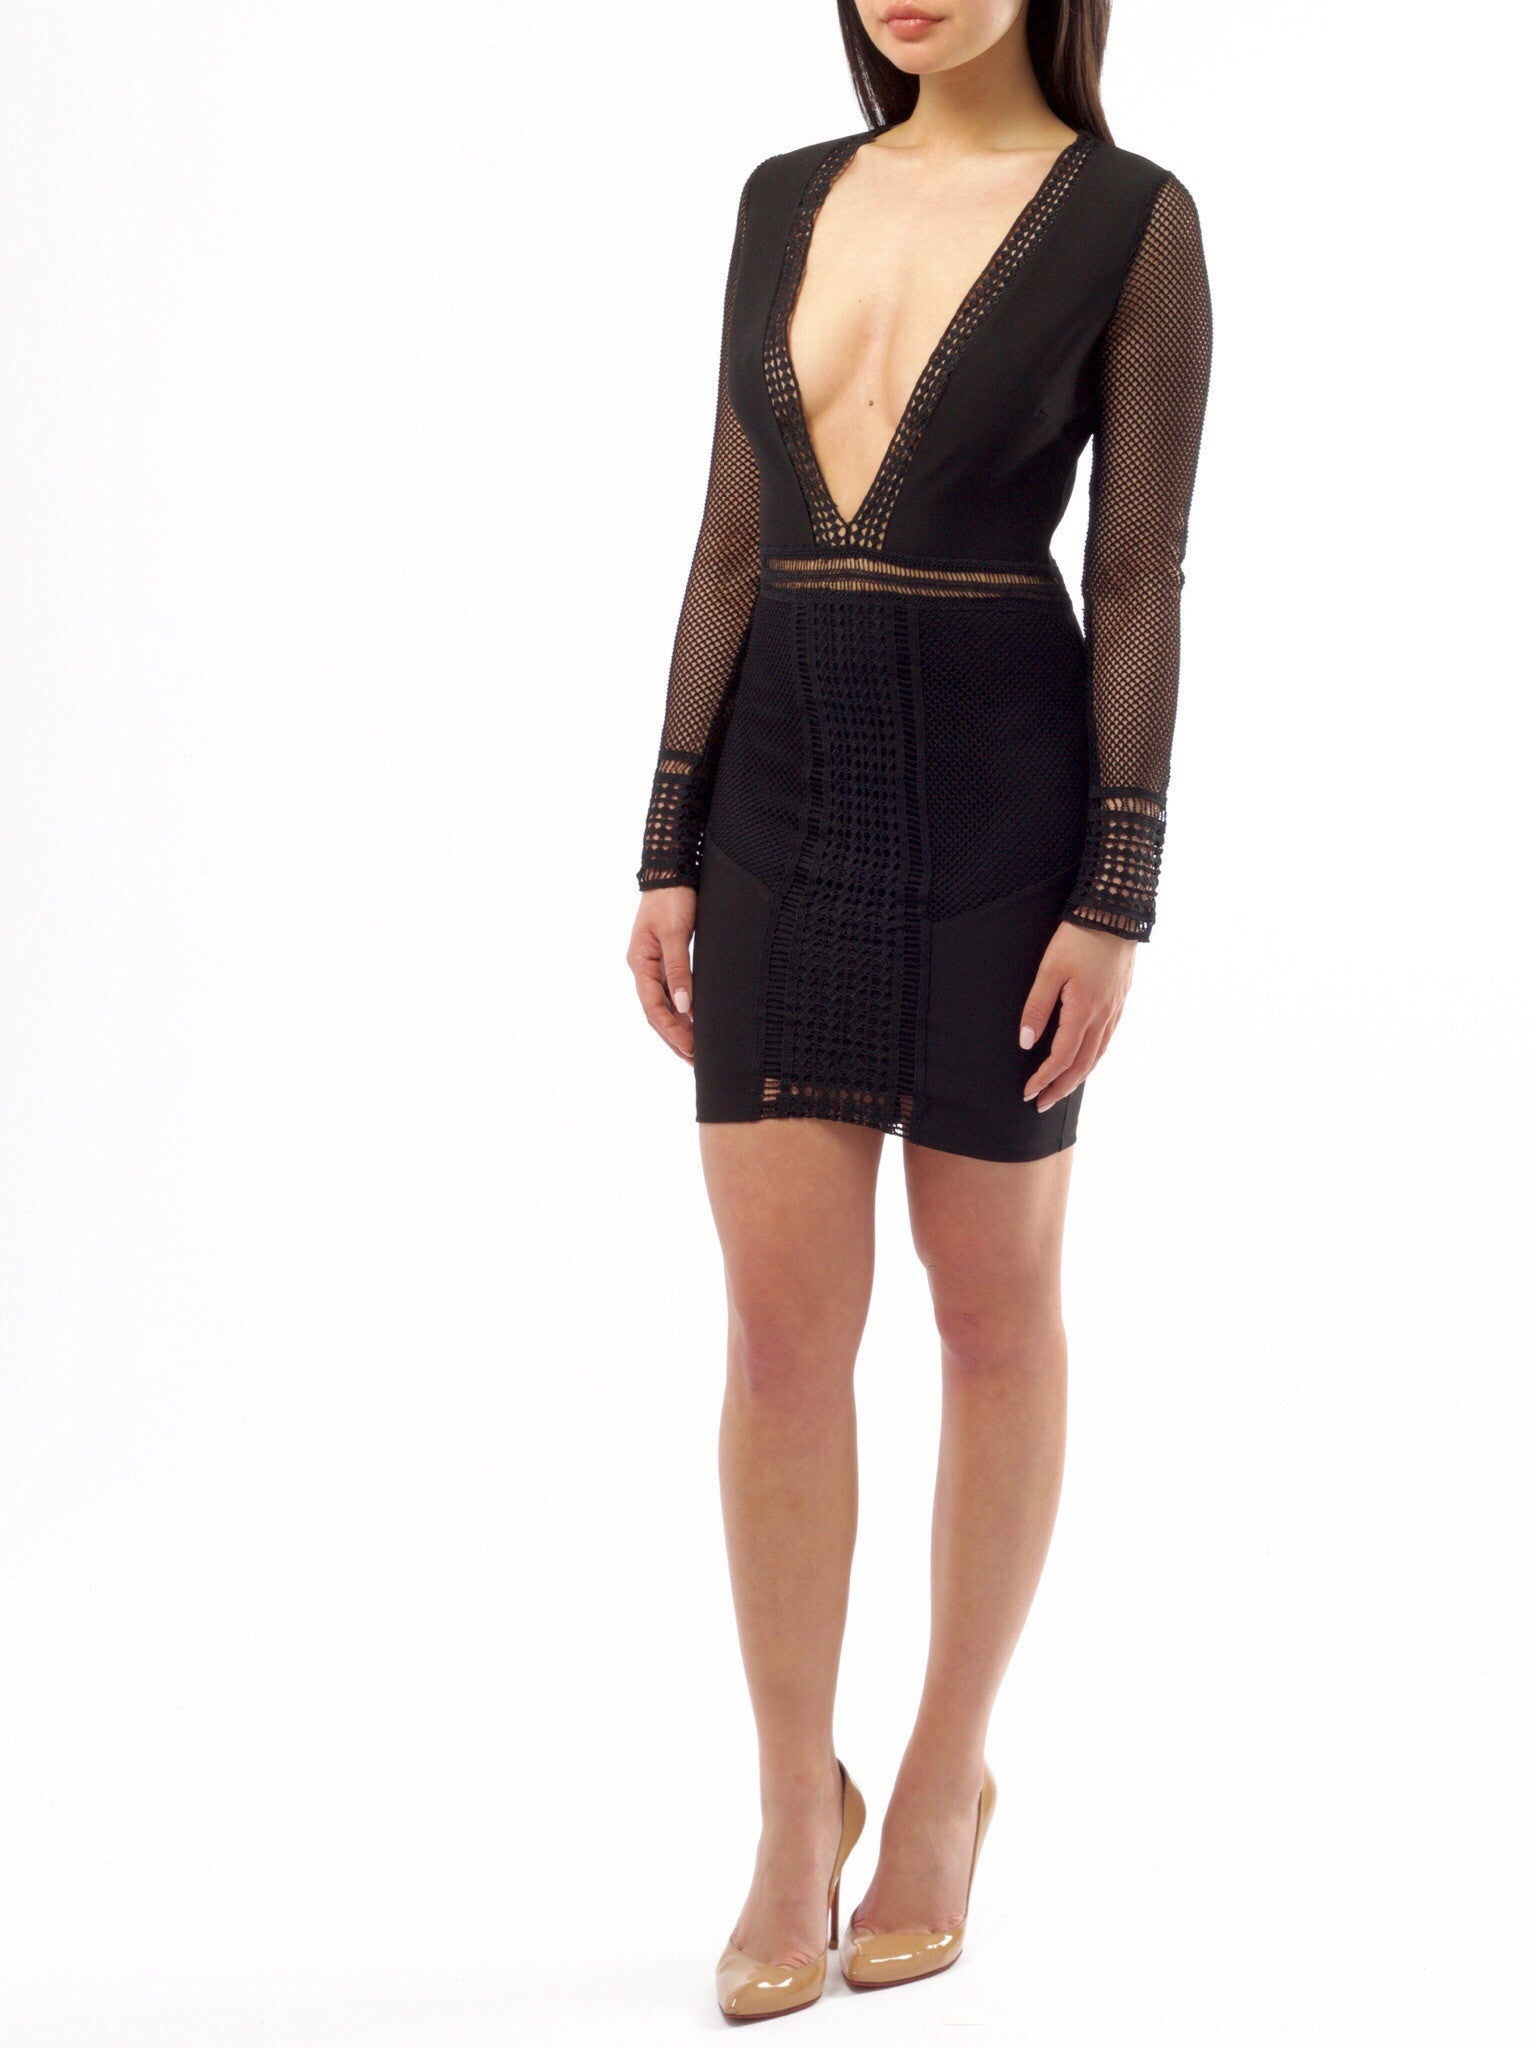 Rita Black Woven Dress - PRADEGAL